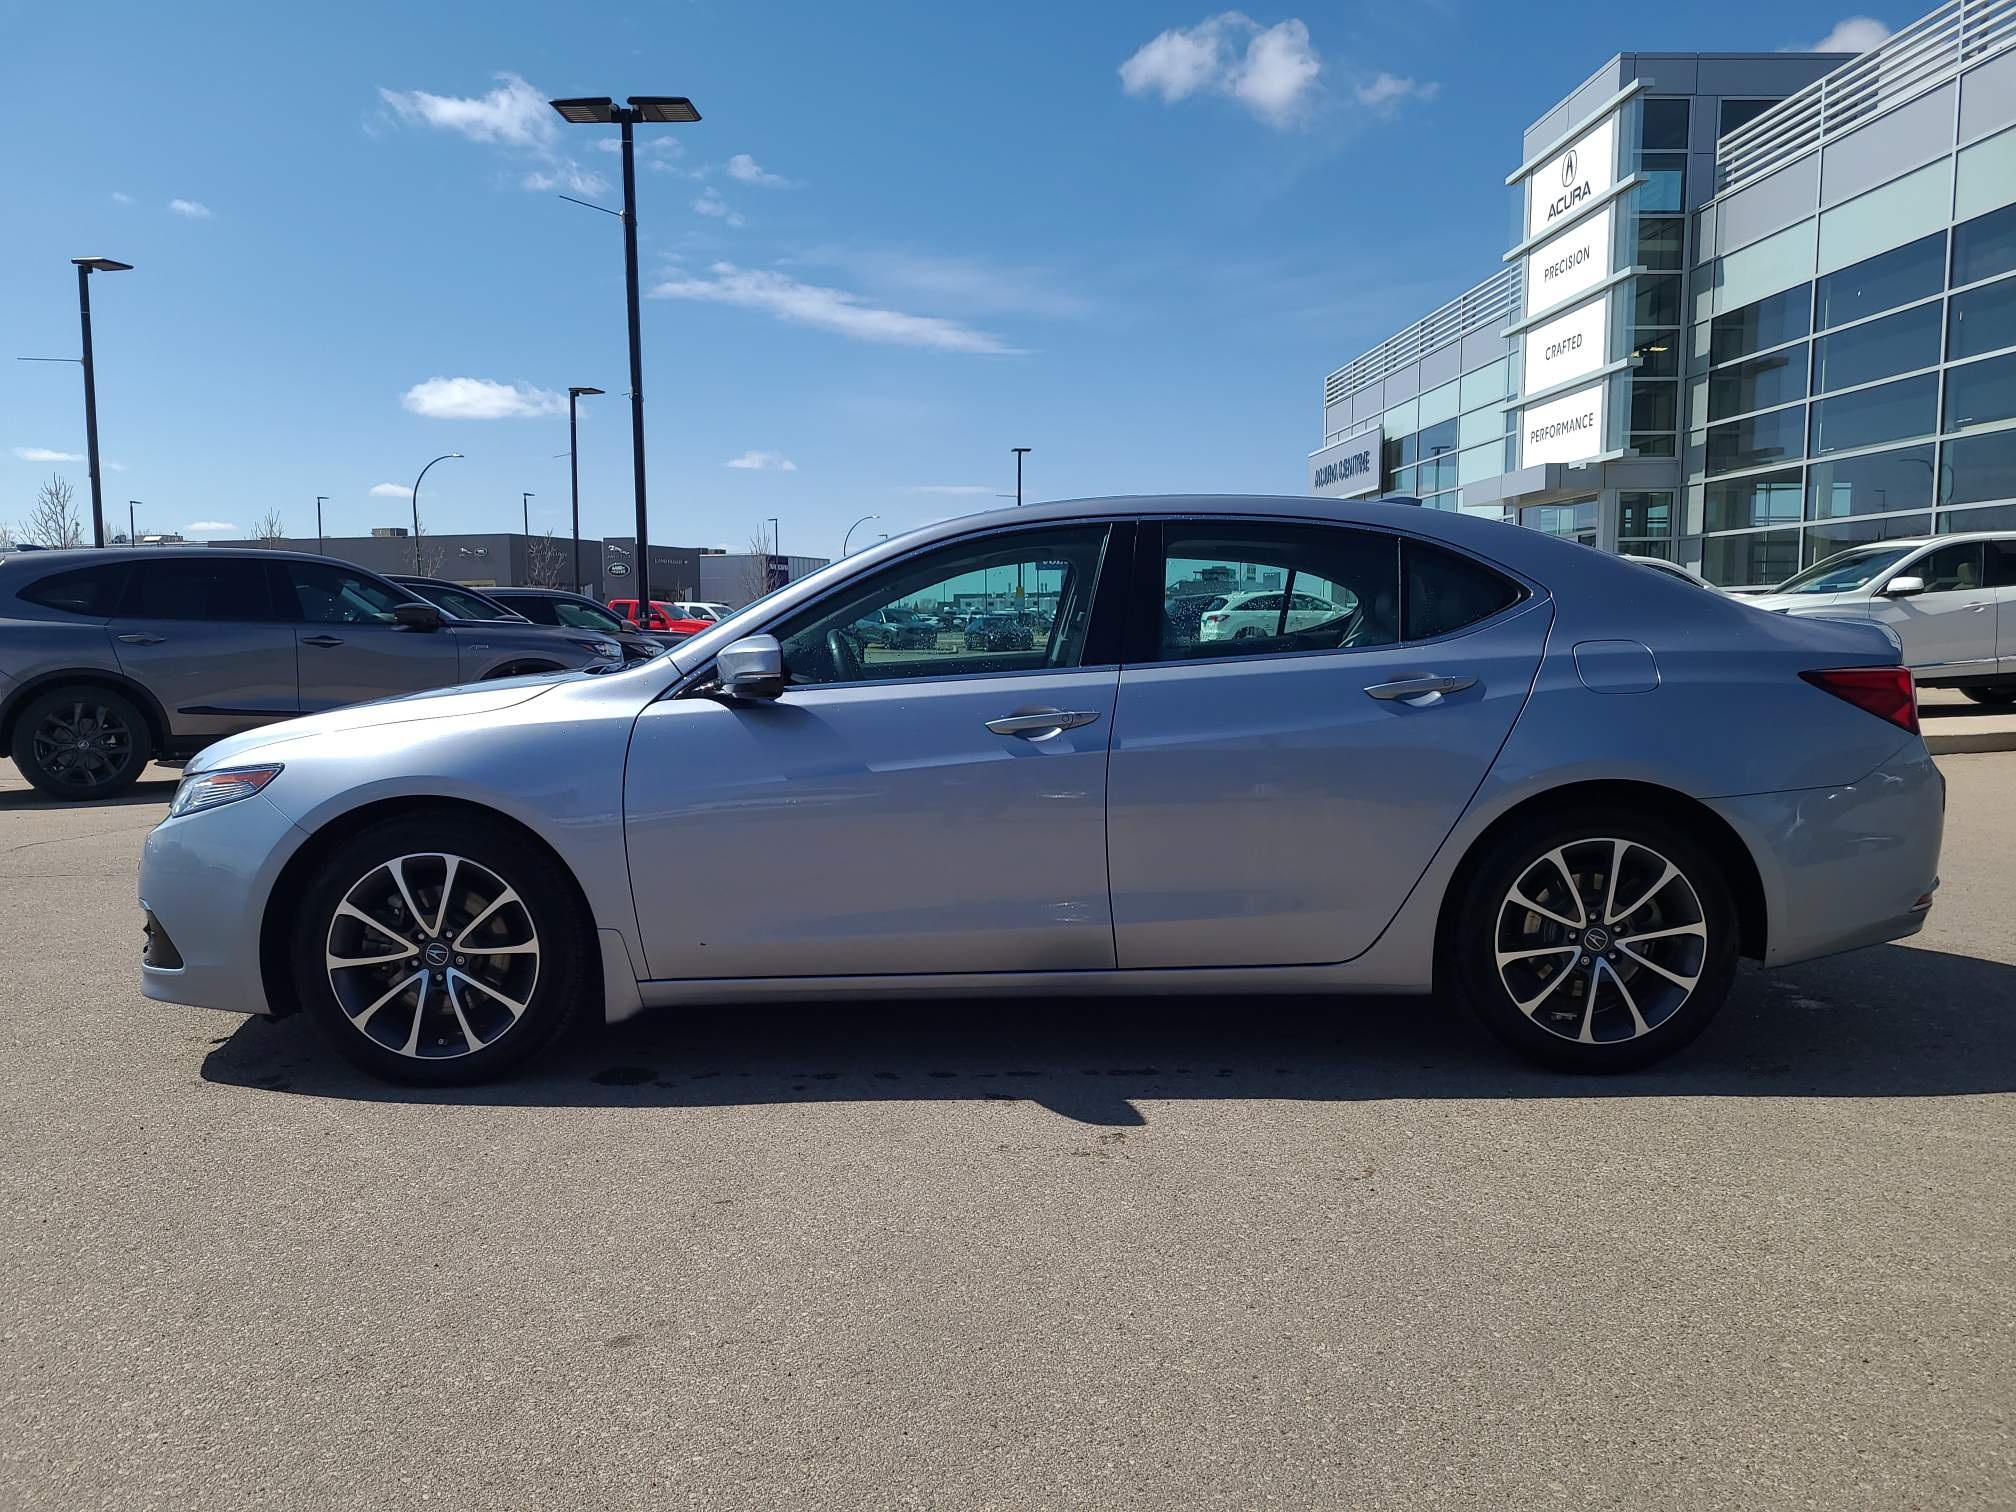 used 2016 Acura TLX car, priced at $21,988